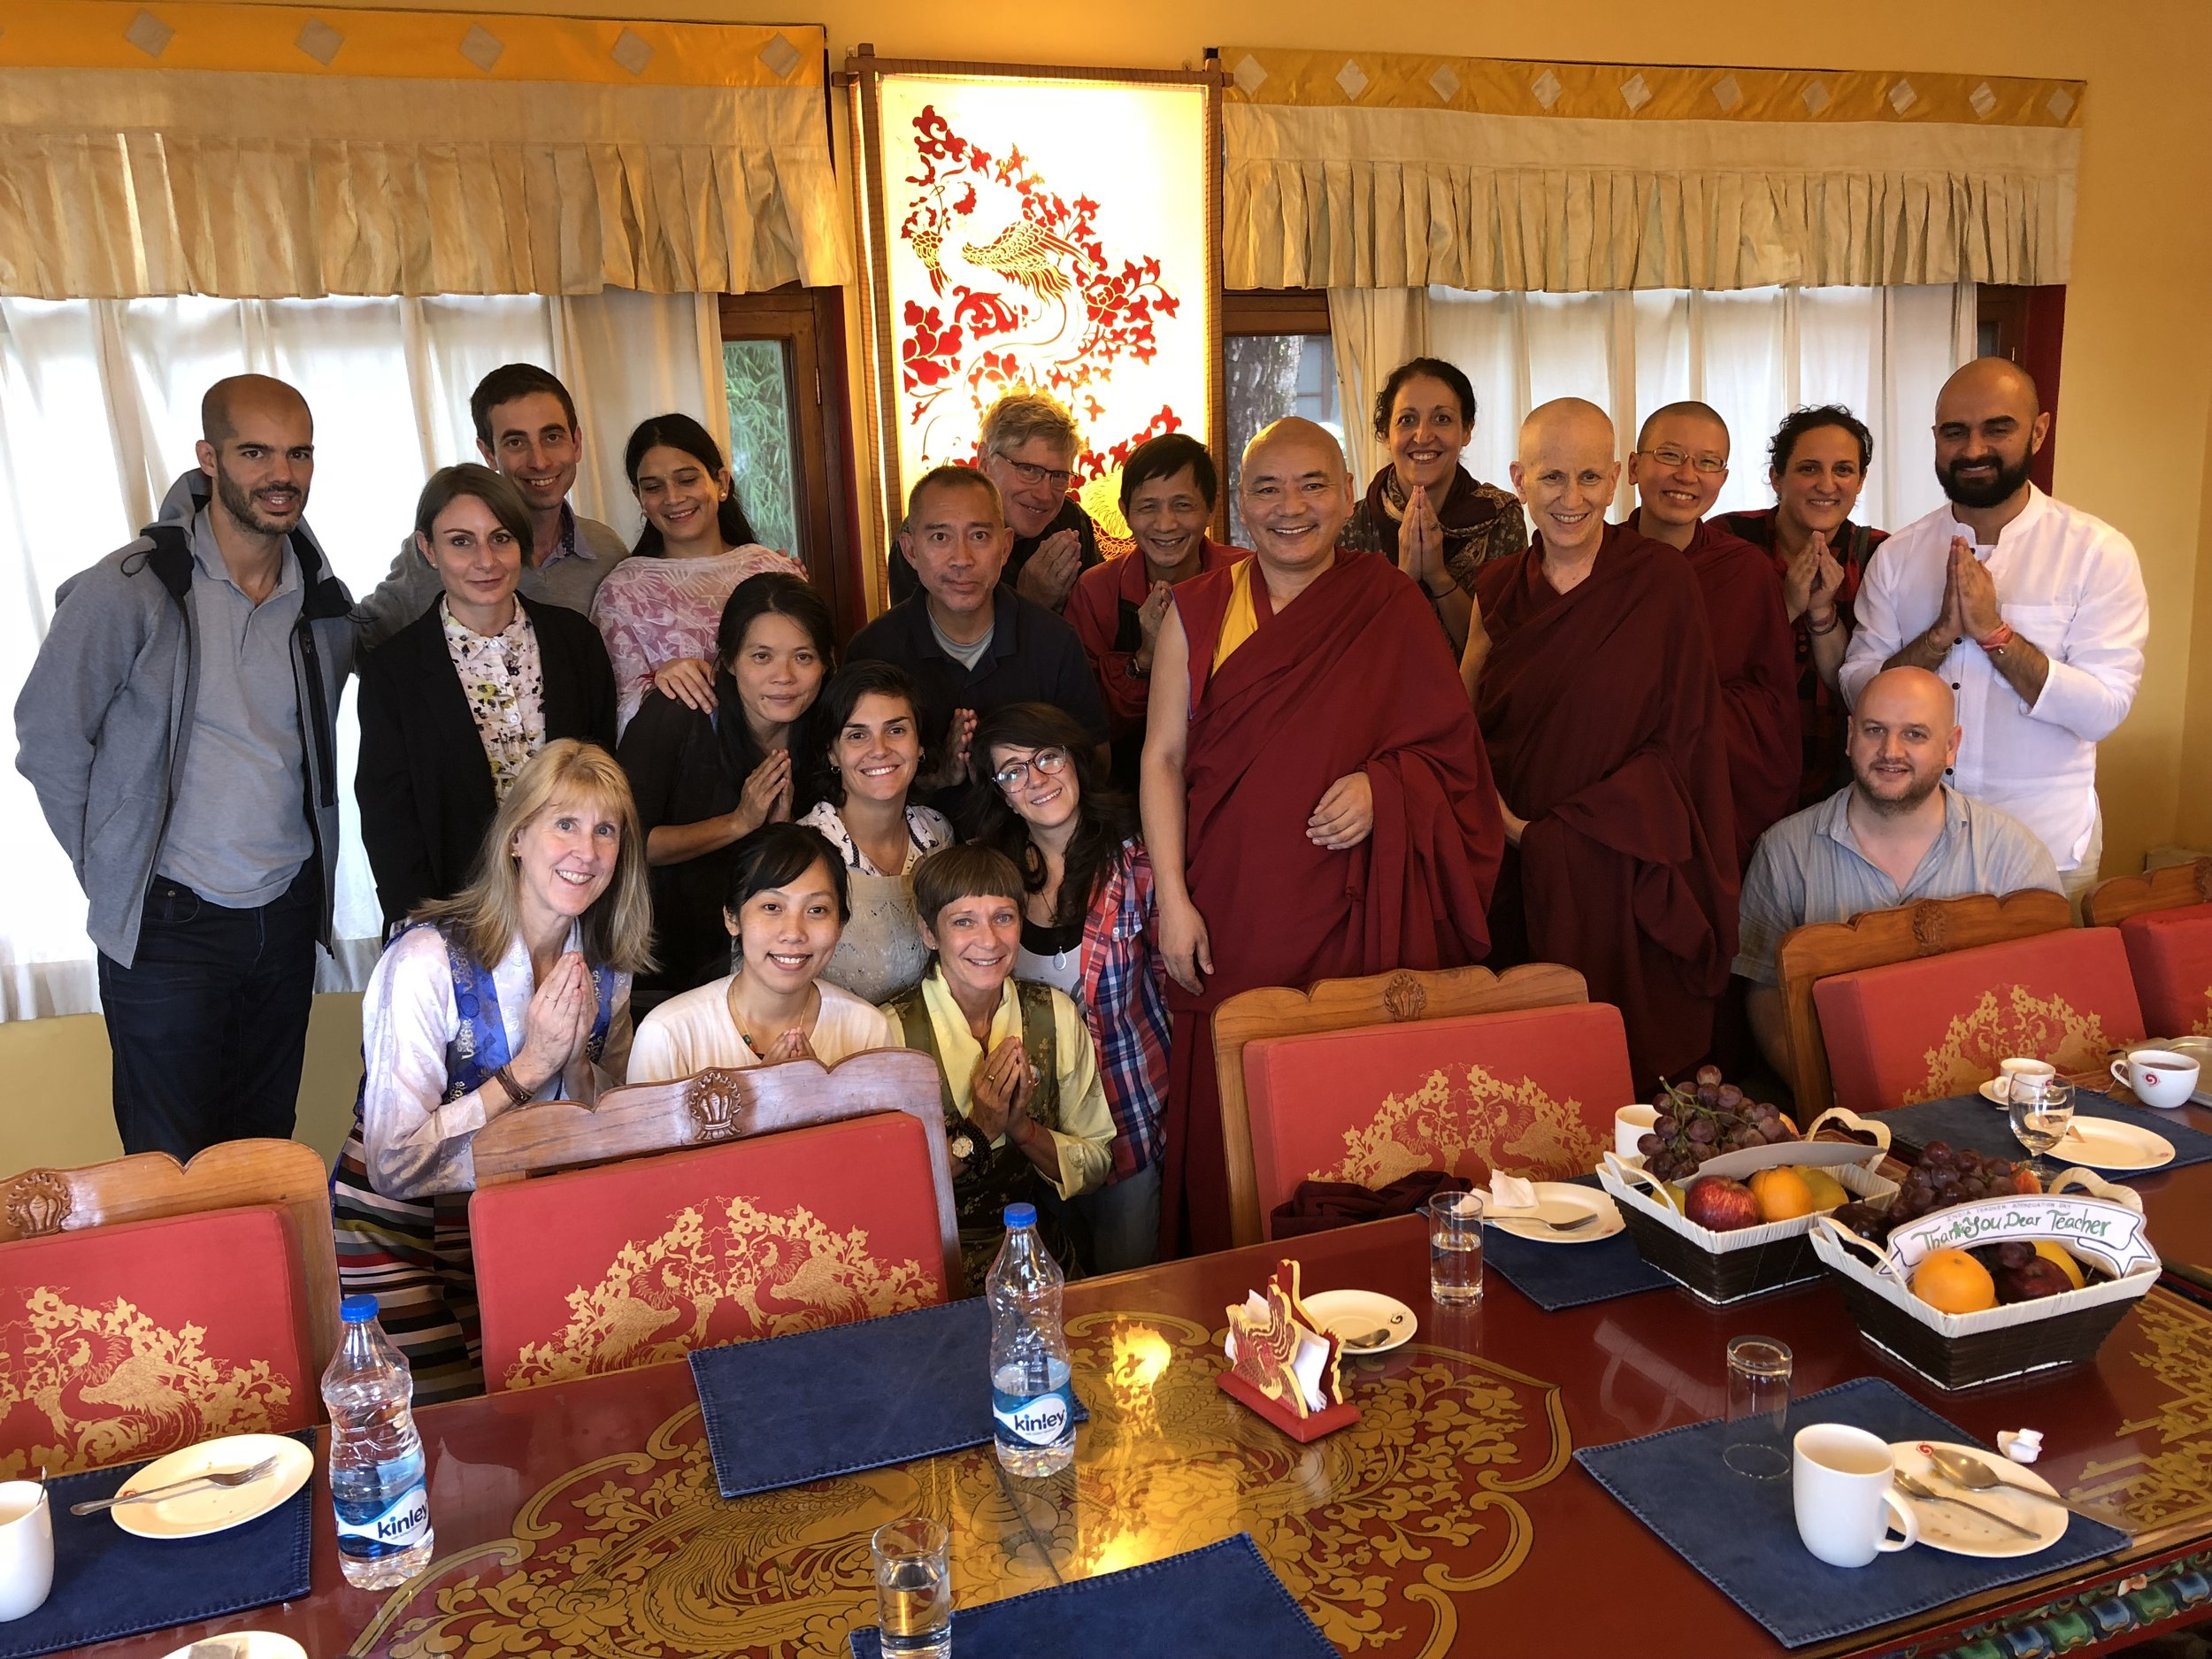 Dharma Family: Luncheon offering for the teachers, Choegyal Rinpoche and Thubten Chödrön after HH Dalai Lama's teaching. From the Himalayan outpost of Mcleod Ganj, Dharamsala. Russ in the back, visiting